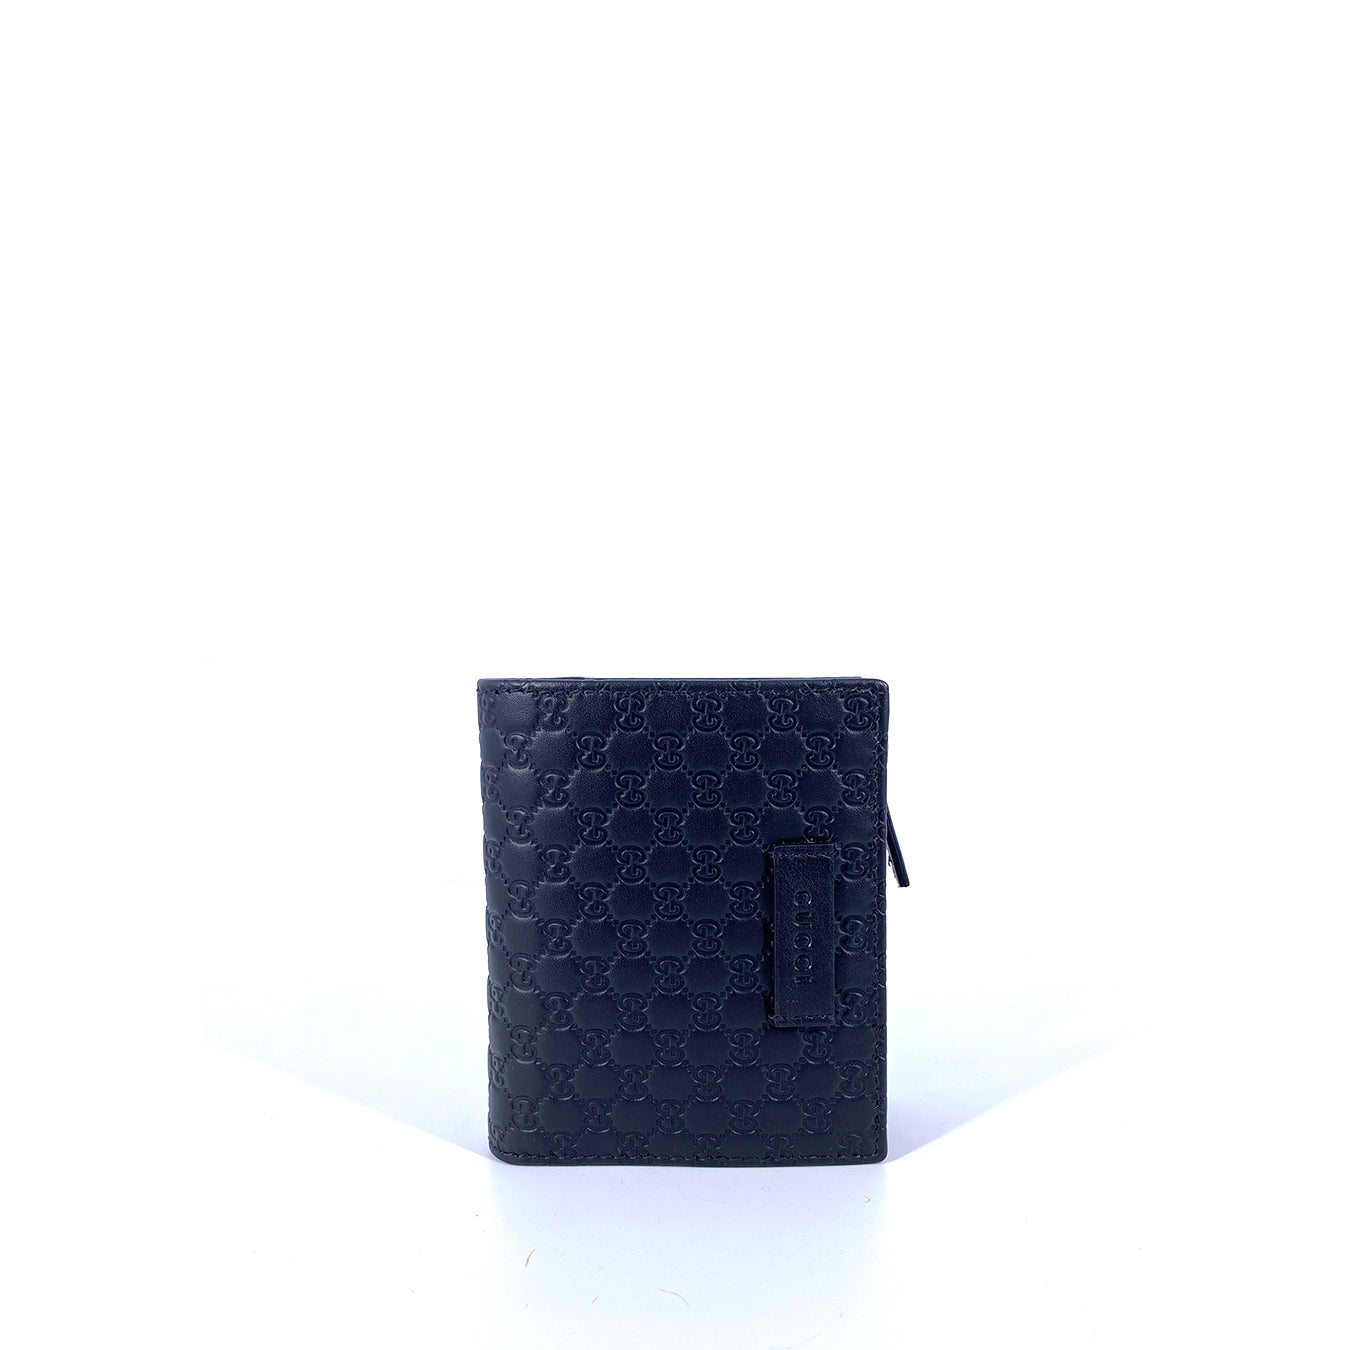 Gucci Micro GG Small Wallet with Zip Coin Purse Black